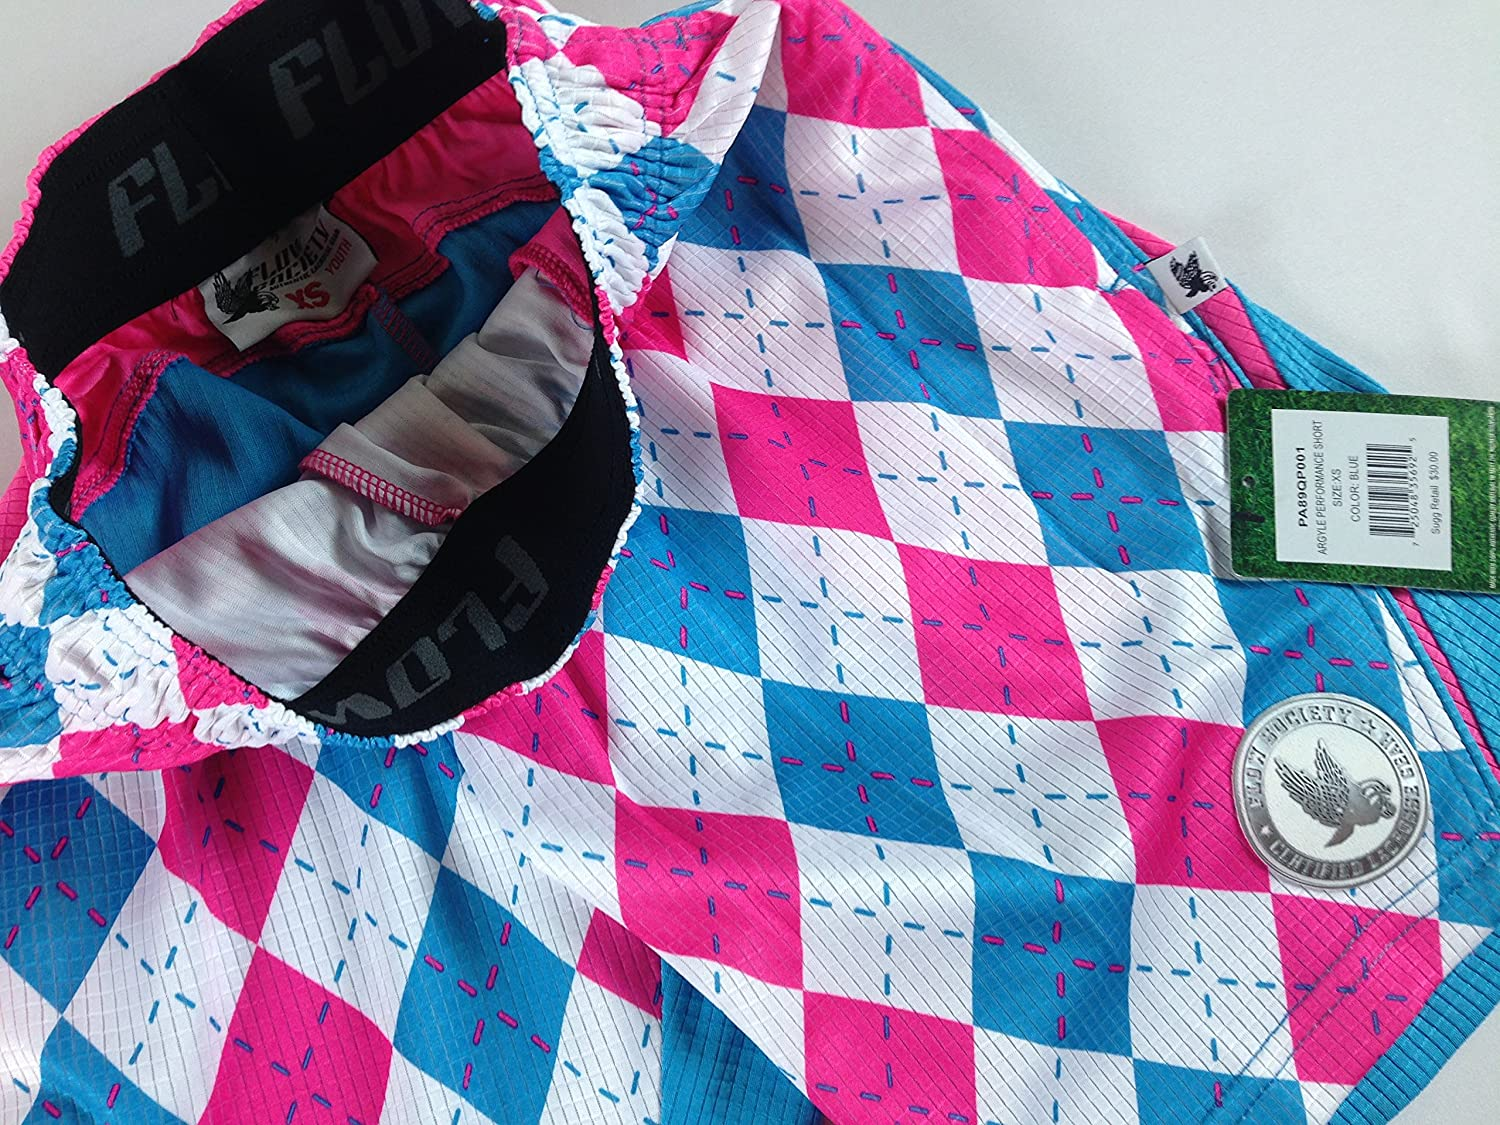 Flow Society Shorts Pink Blue Argyle Youth Lacrosse Kids Boys Girls Cotton Candy